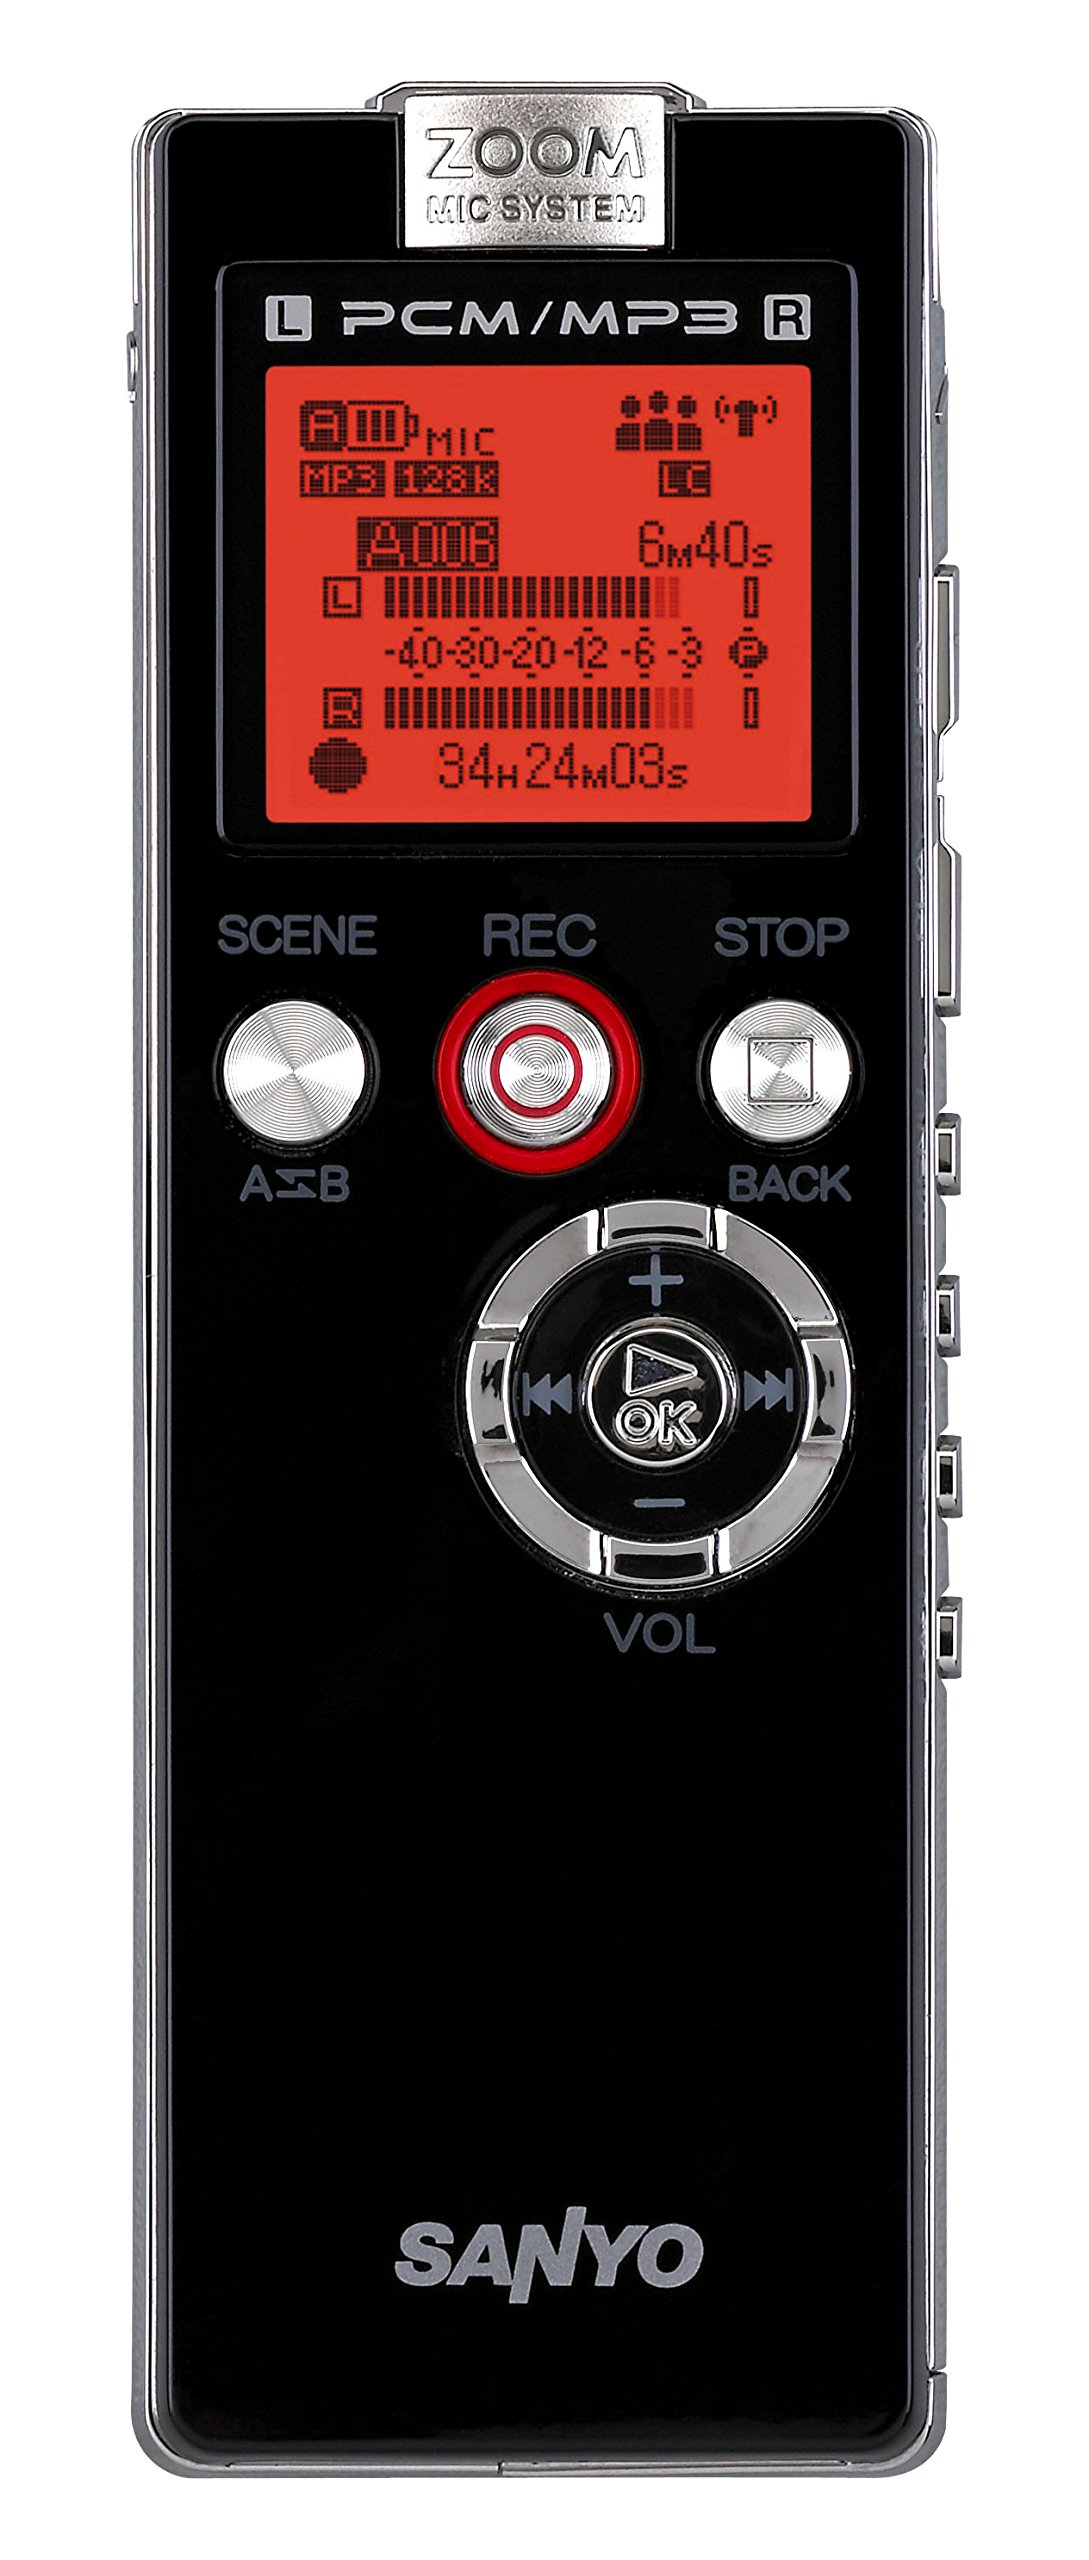 Sanyo ICR-EH800D Digital Voice Recorder (ICR-EH800D) by Sanyo